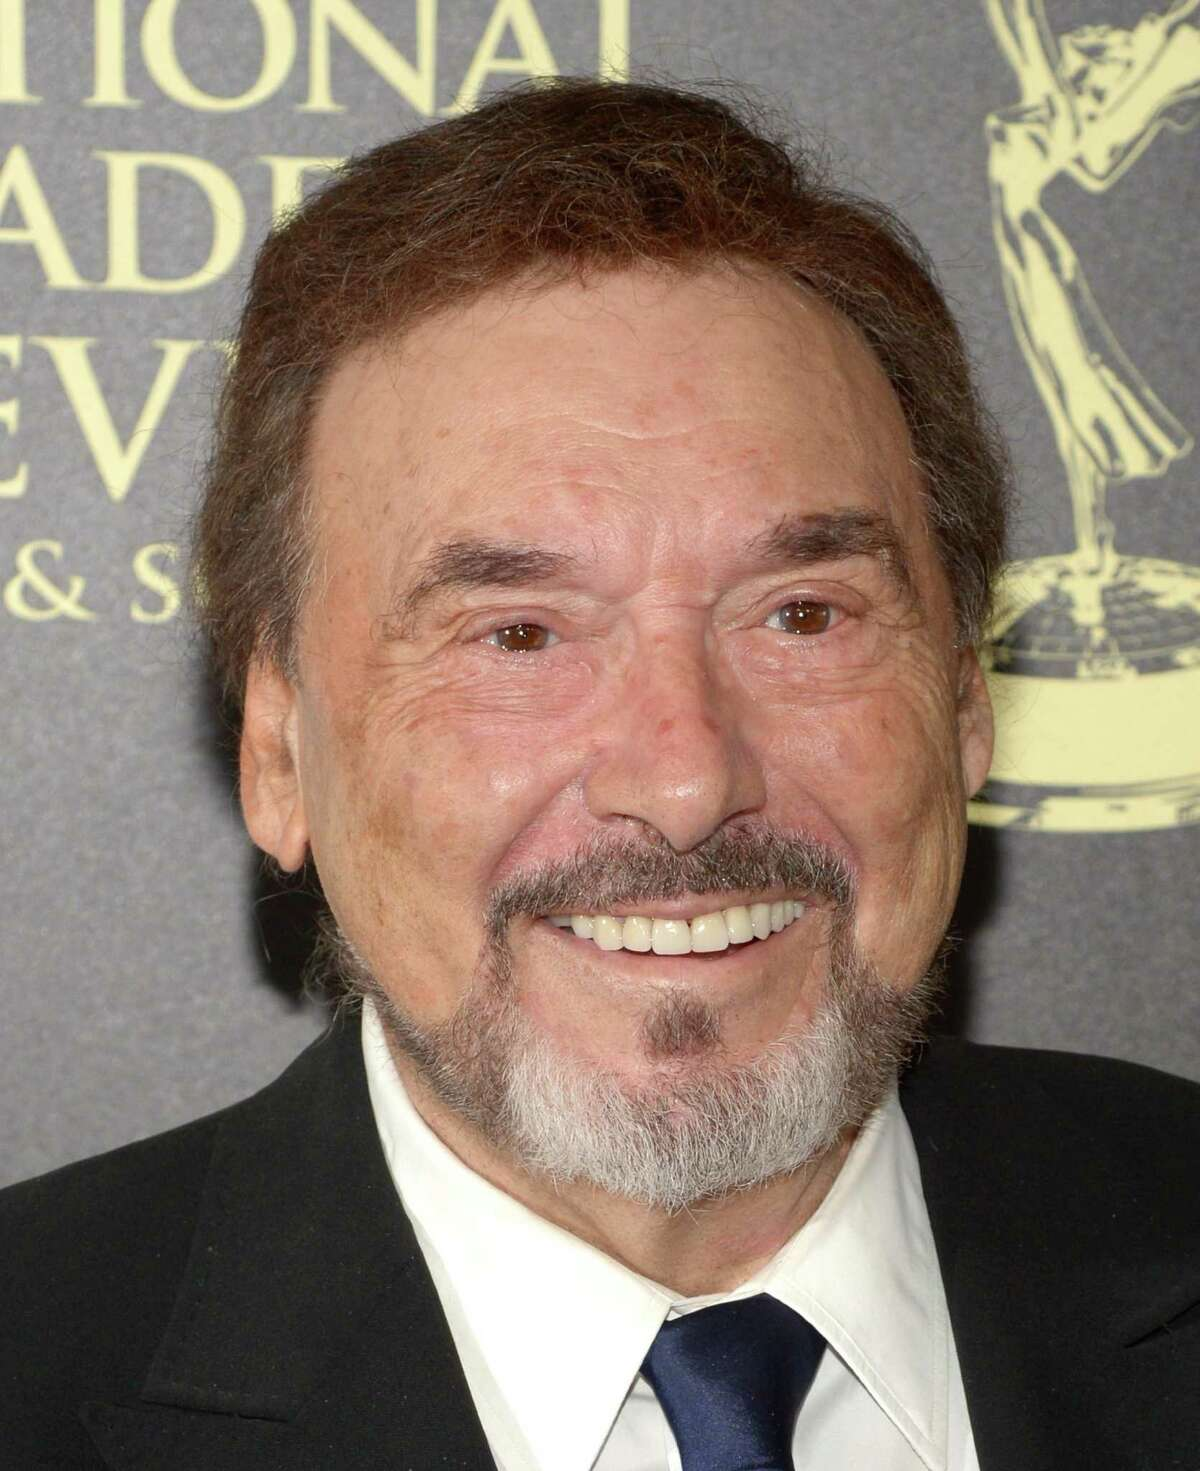 """Actor Joseph Mascolo, known for his work on """"Days of Our Lives"""", has passed away after a battle with Alzheimer's disease. He was 87 years old."""